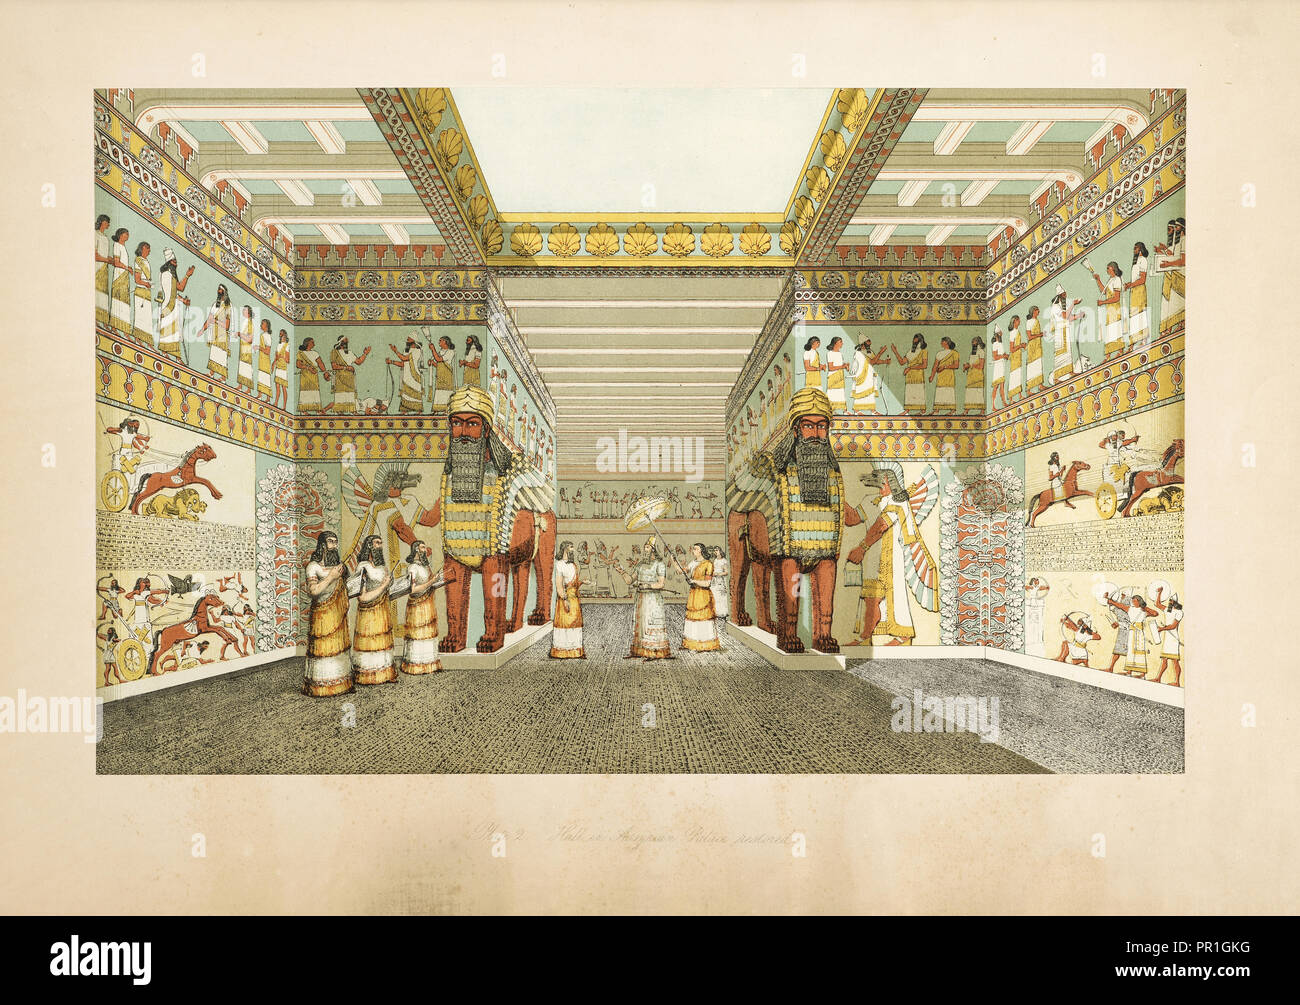 The monuments of Nineveh: from drawings made on the spott: first series, Layard, Austen Henry, Sir, 1817-1894, 1849 Stock Photo